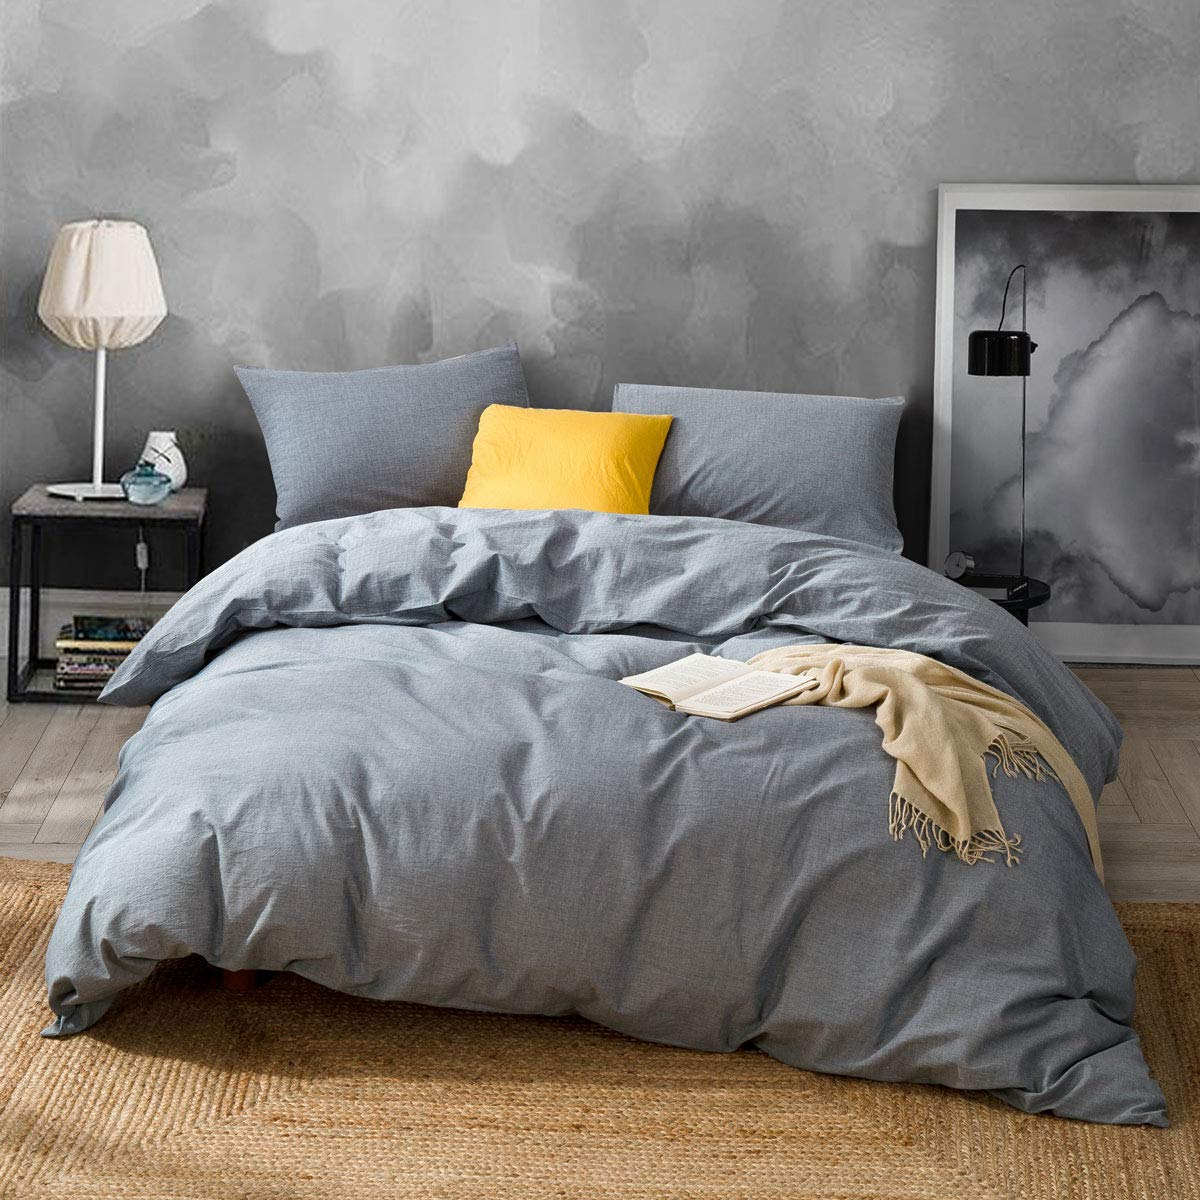 ATsense Duvet Cover Queen, 100% Washed Cotton, Bedding Duvet Cover Set, 3-Piece, Ultra Soft and Easy Care, Simple Style Farmhouse Bedding Set (Grey 7004-7)